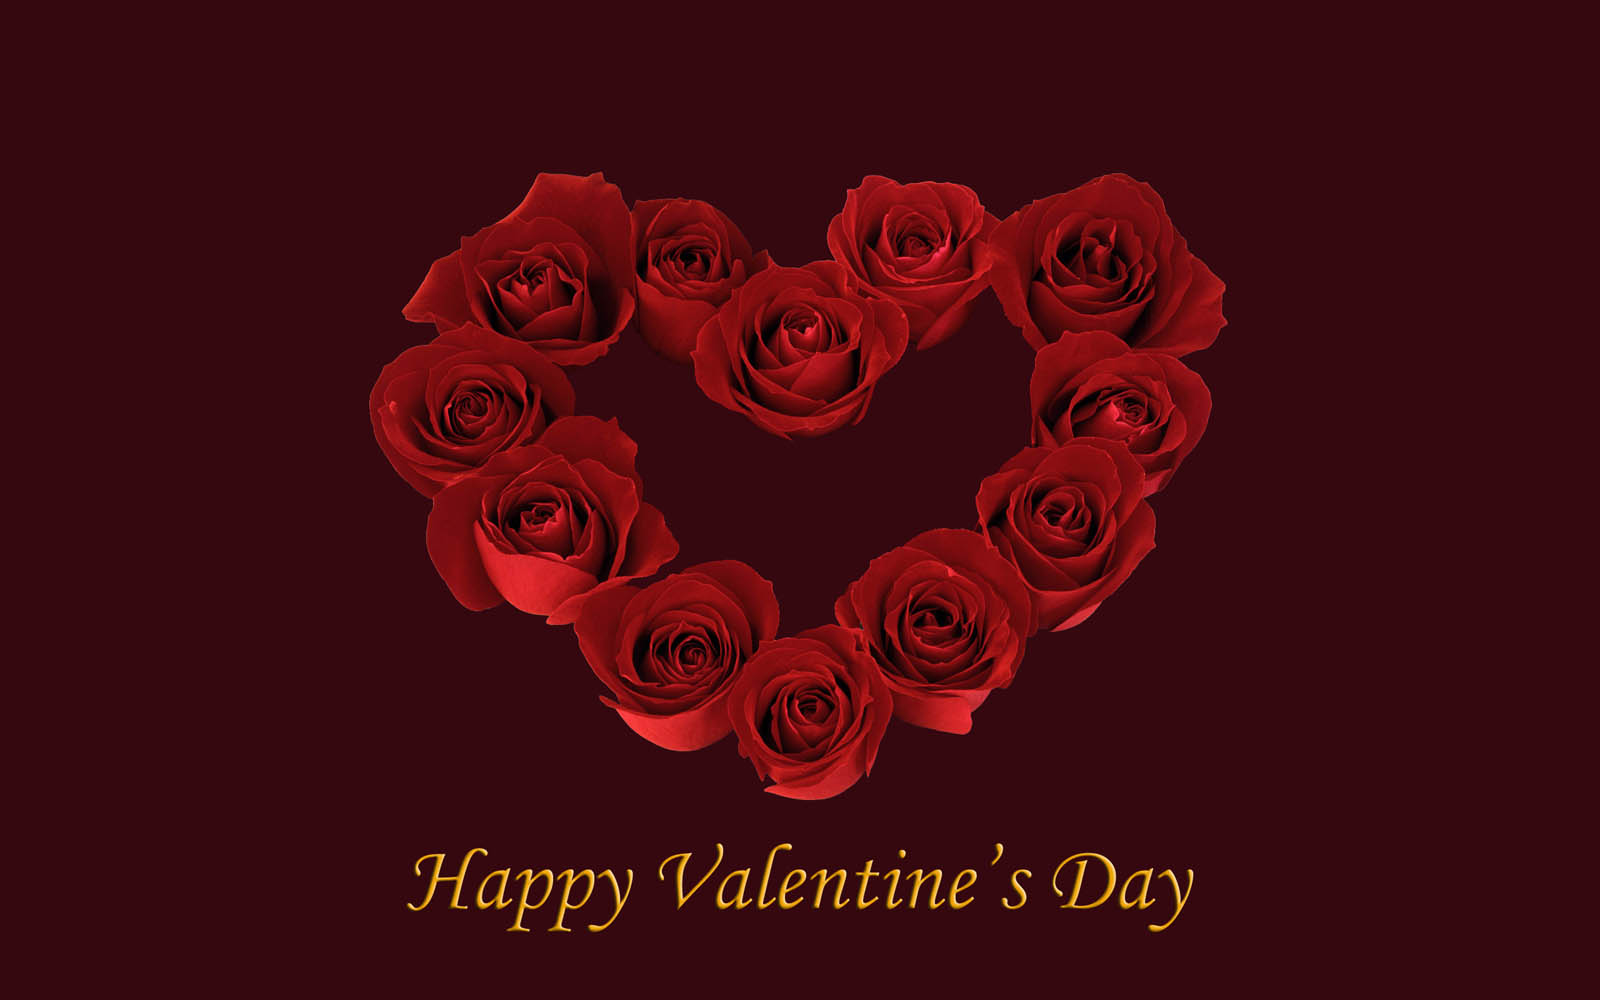 Wallpapers valentine 39 s day backgrounds - Background for valentine pictures ...